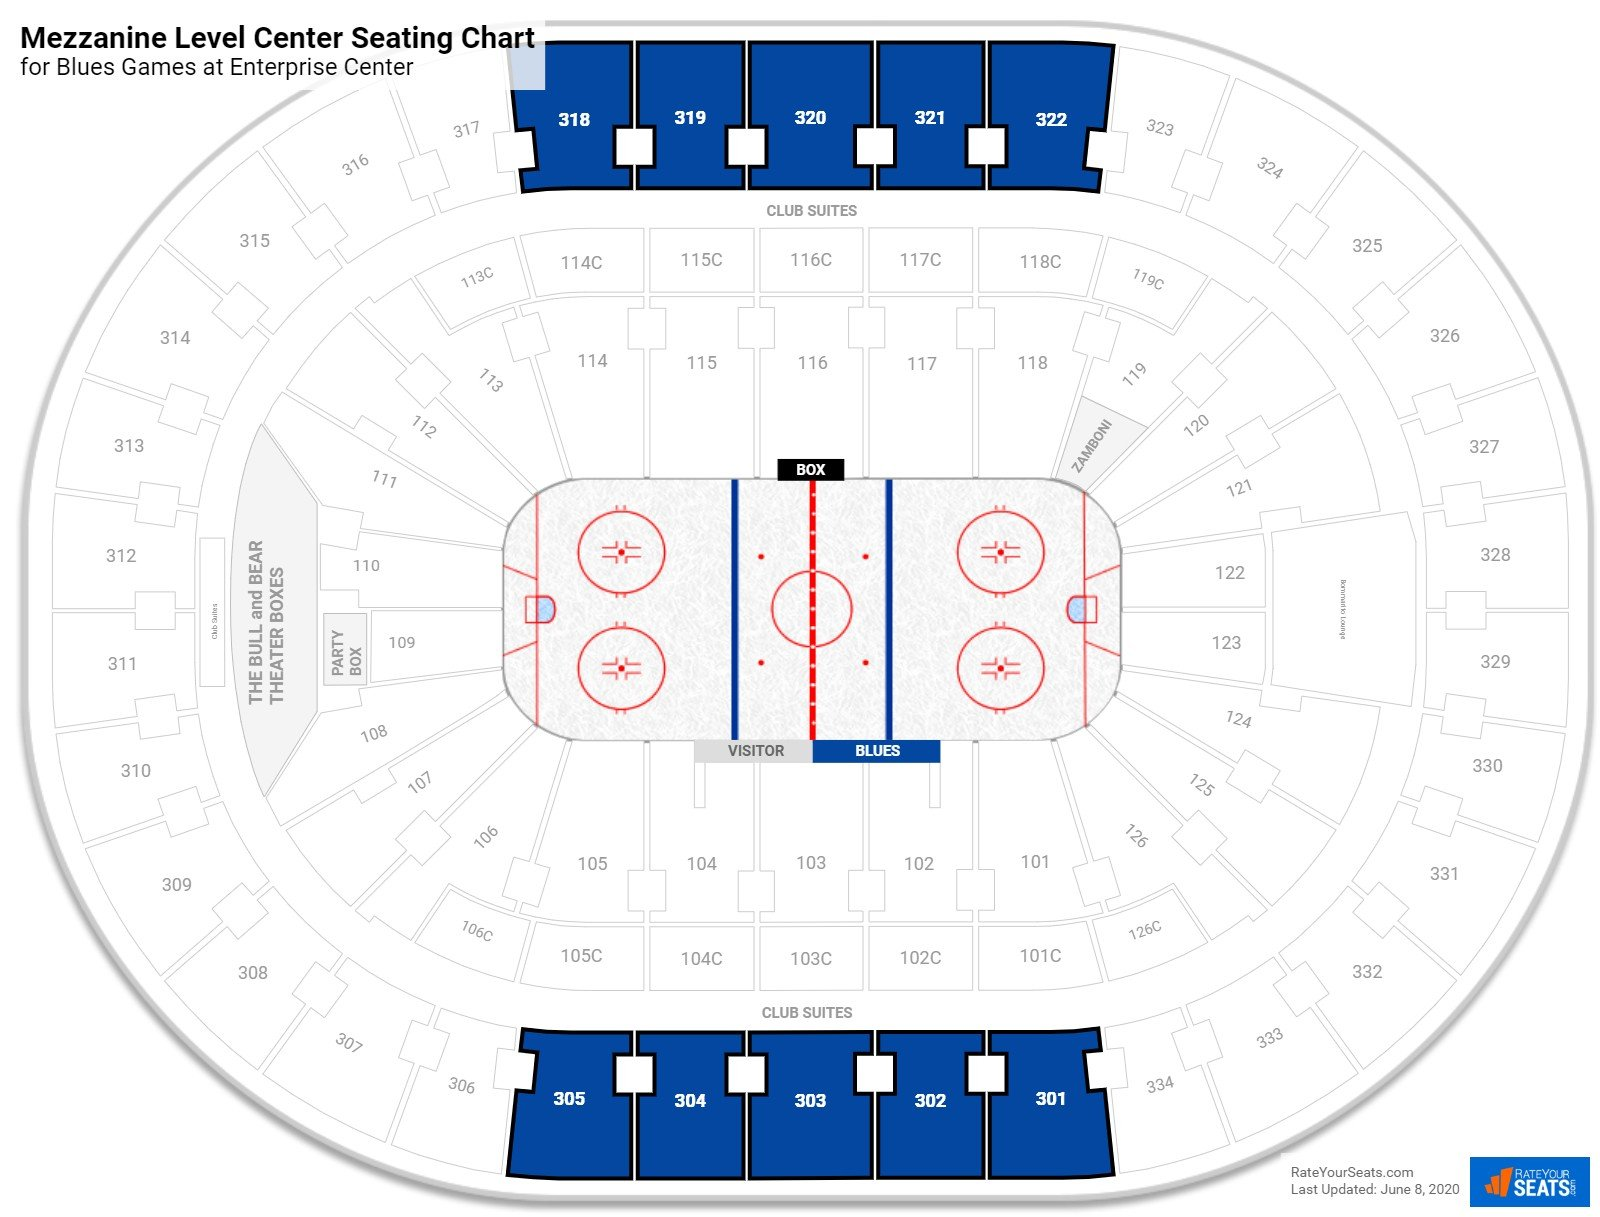 Scottrade Center Mezzanine Level Center seating chart